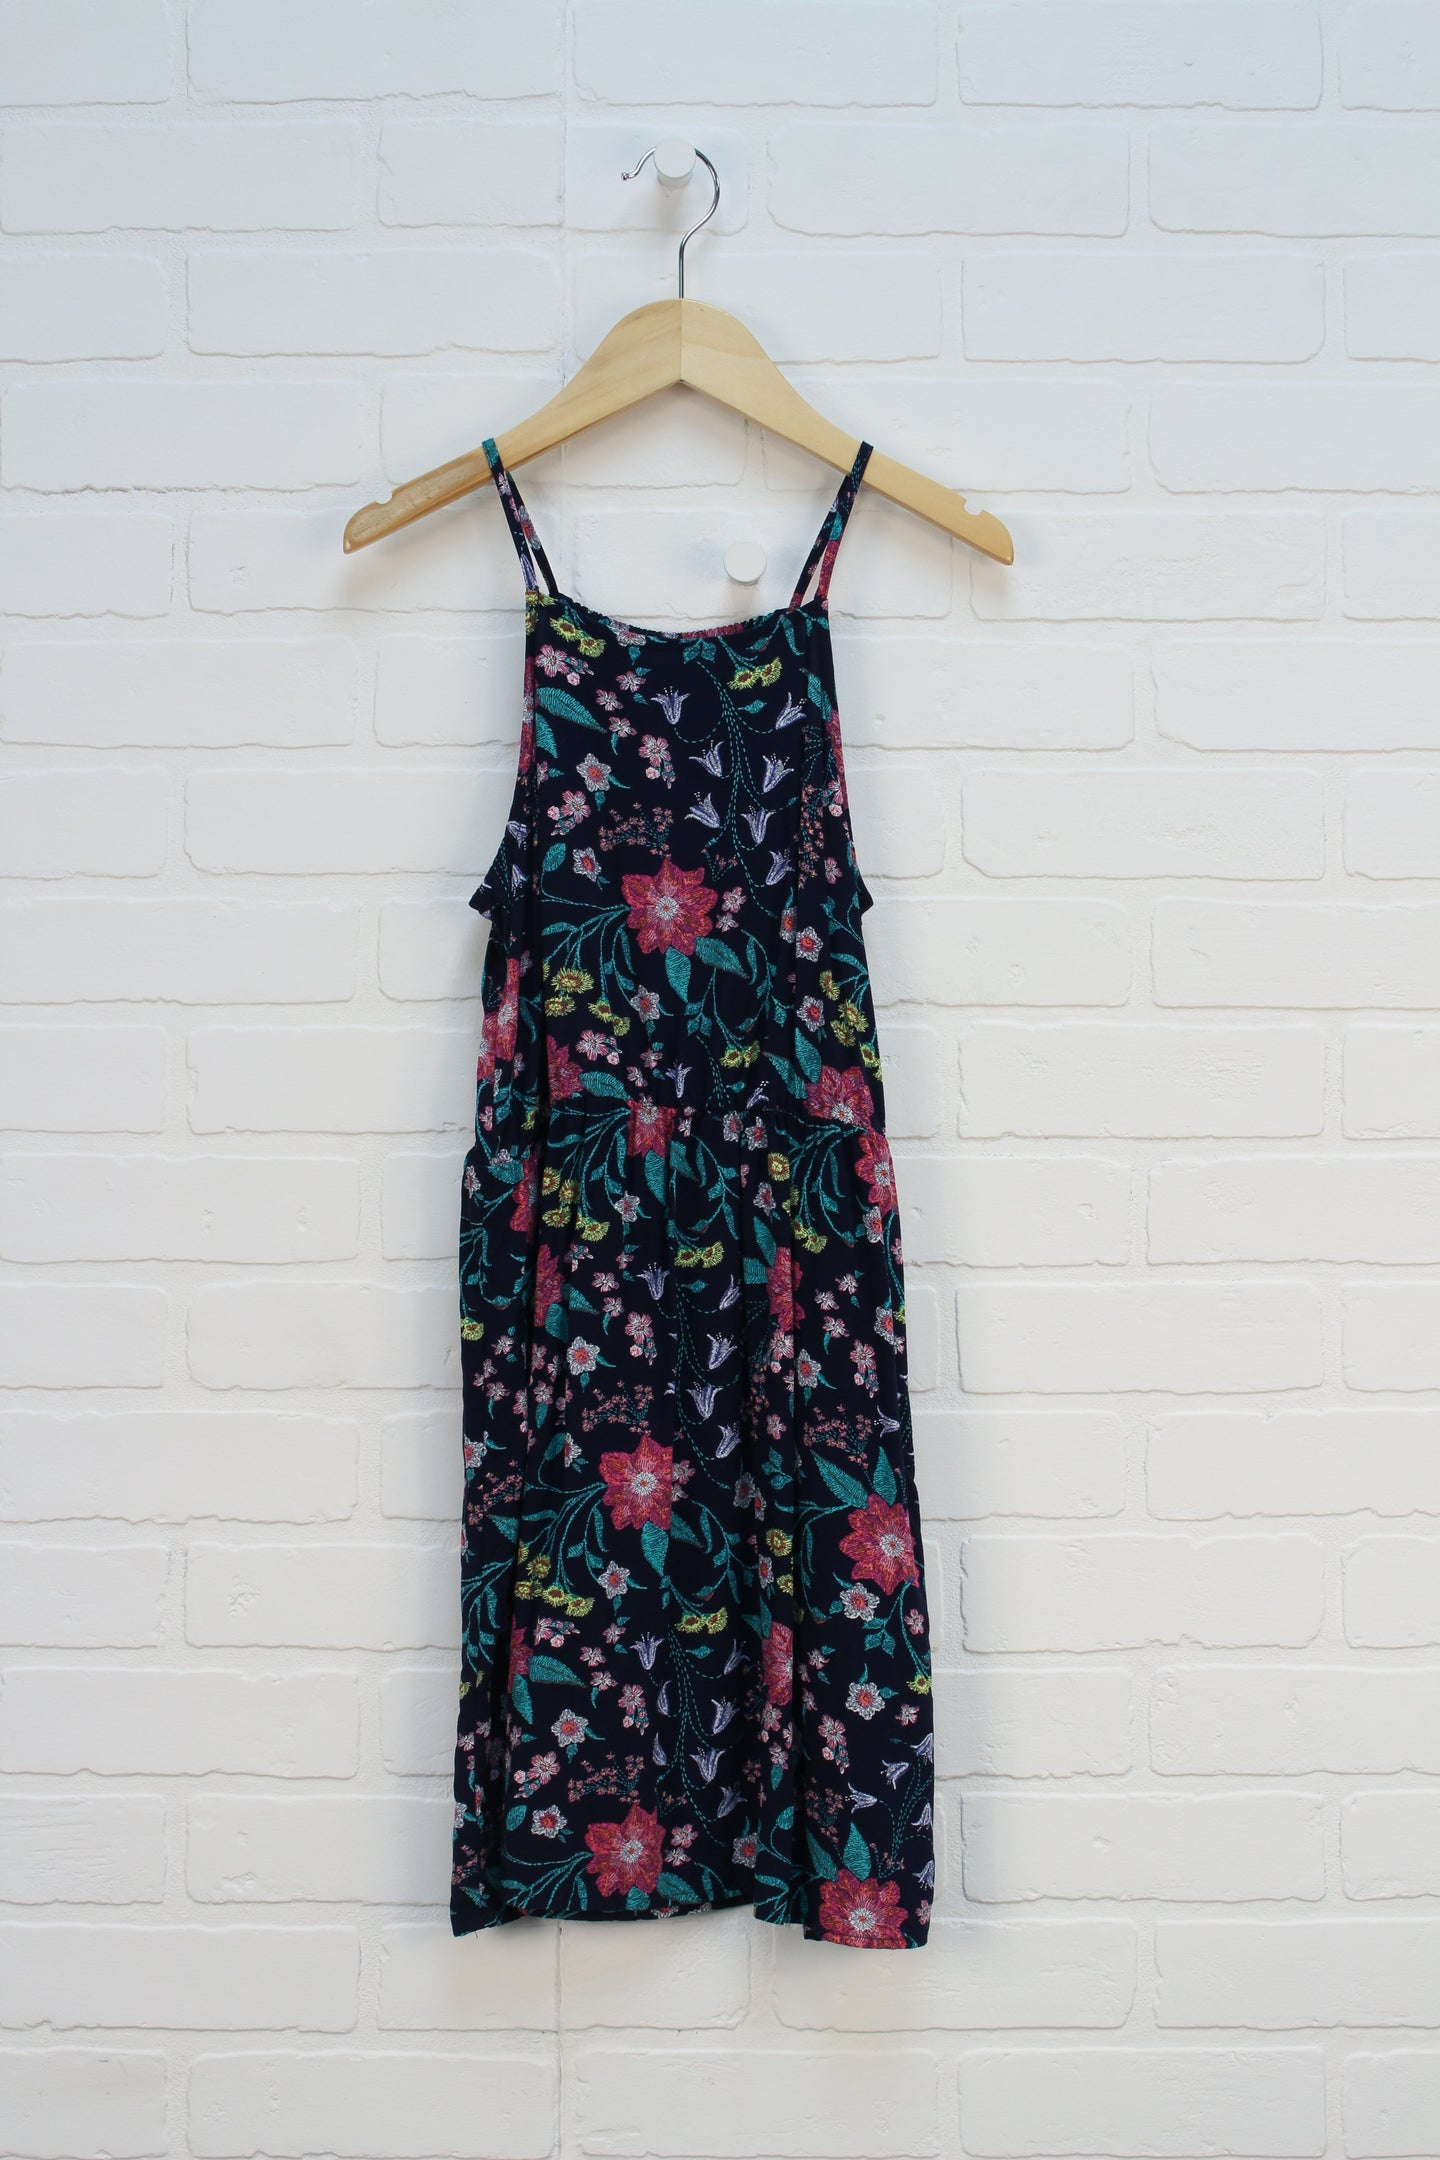 Navy Floral Sundress (Size L/10-12)